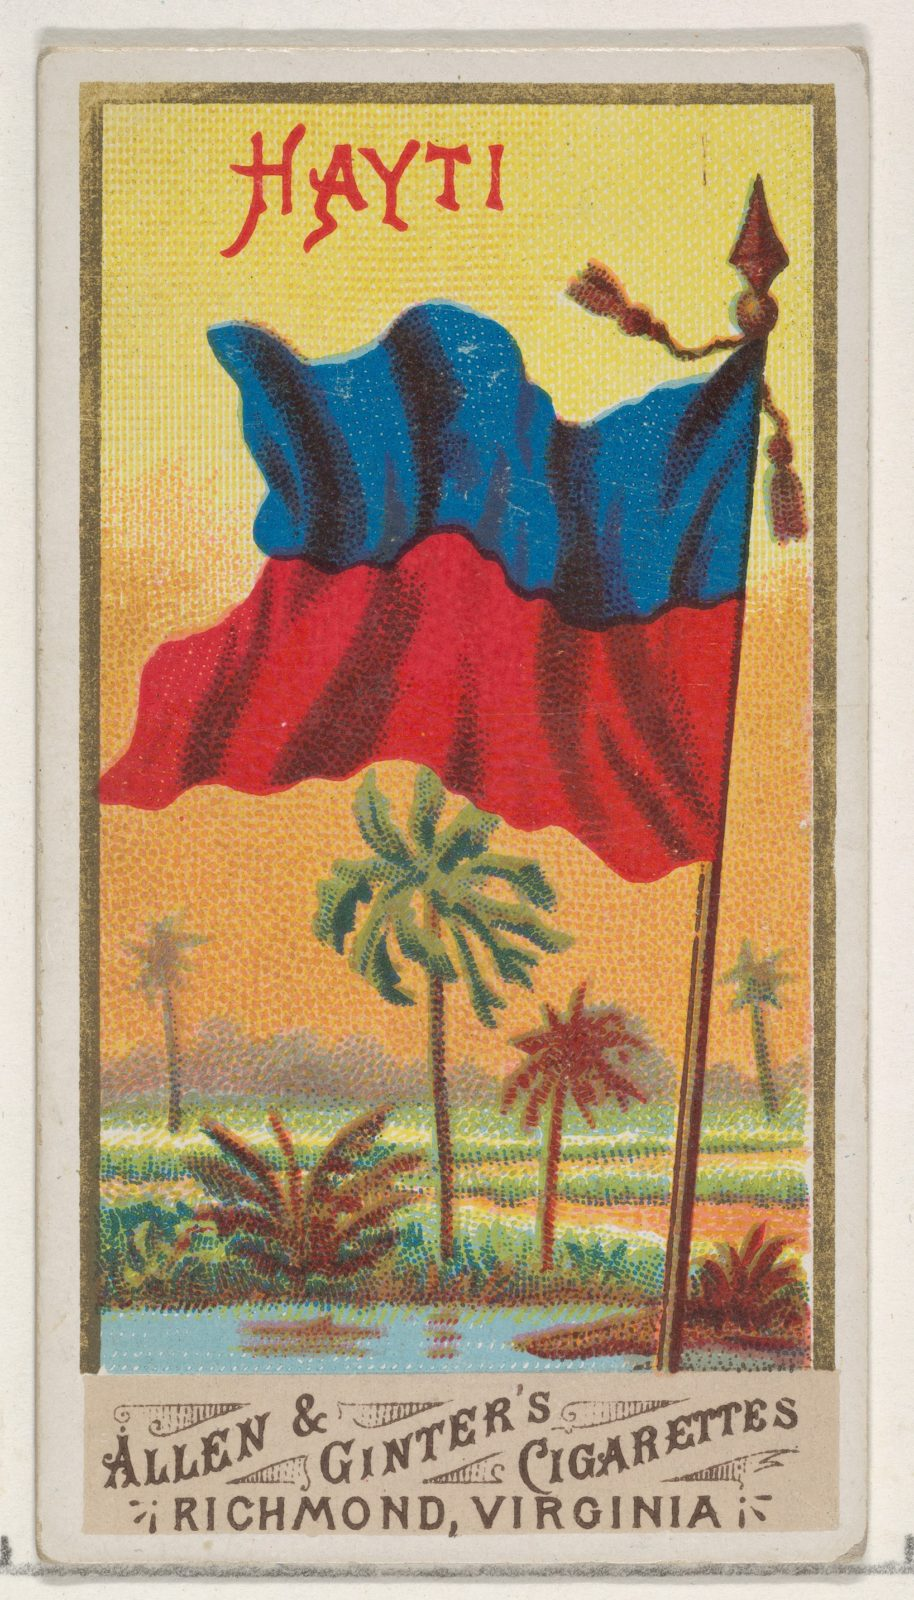 Haiti, from Flags of All Nations, Series 1 (N9) for Allen & Ginter Cigarettes Brands